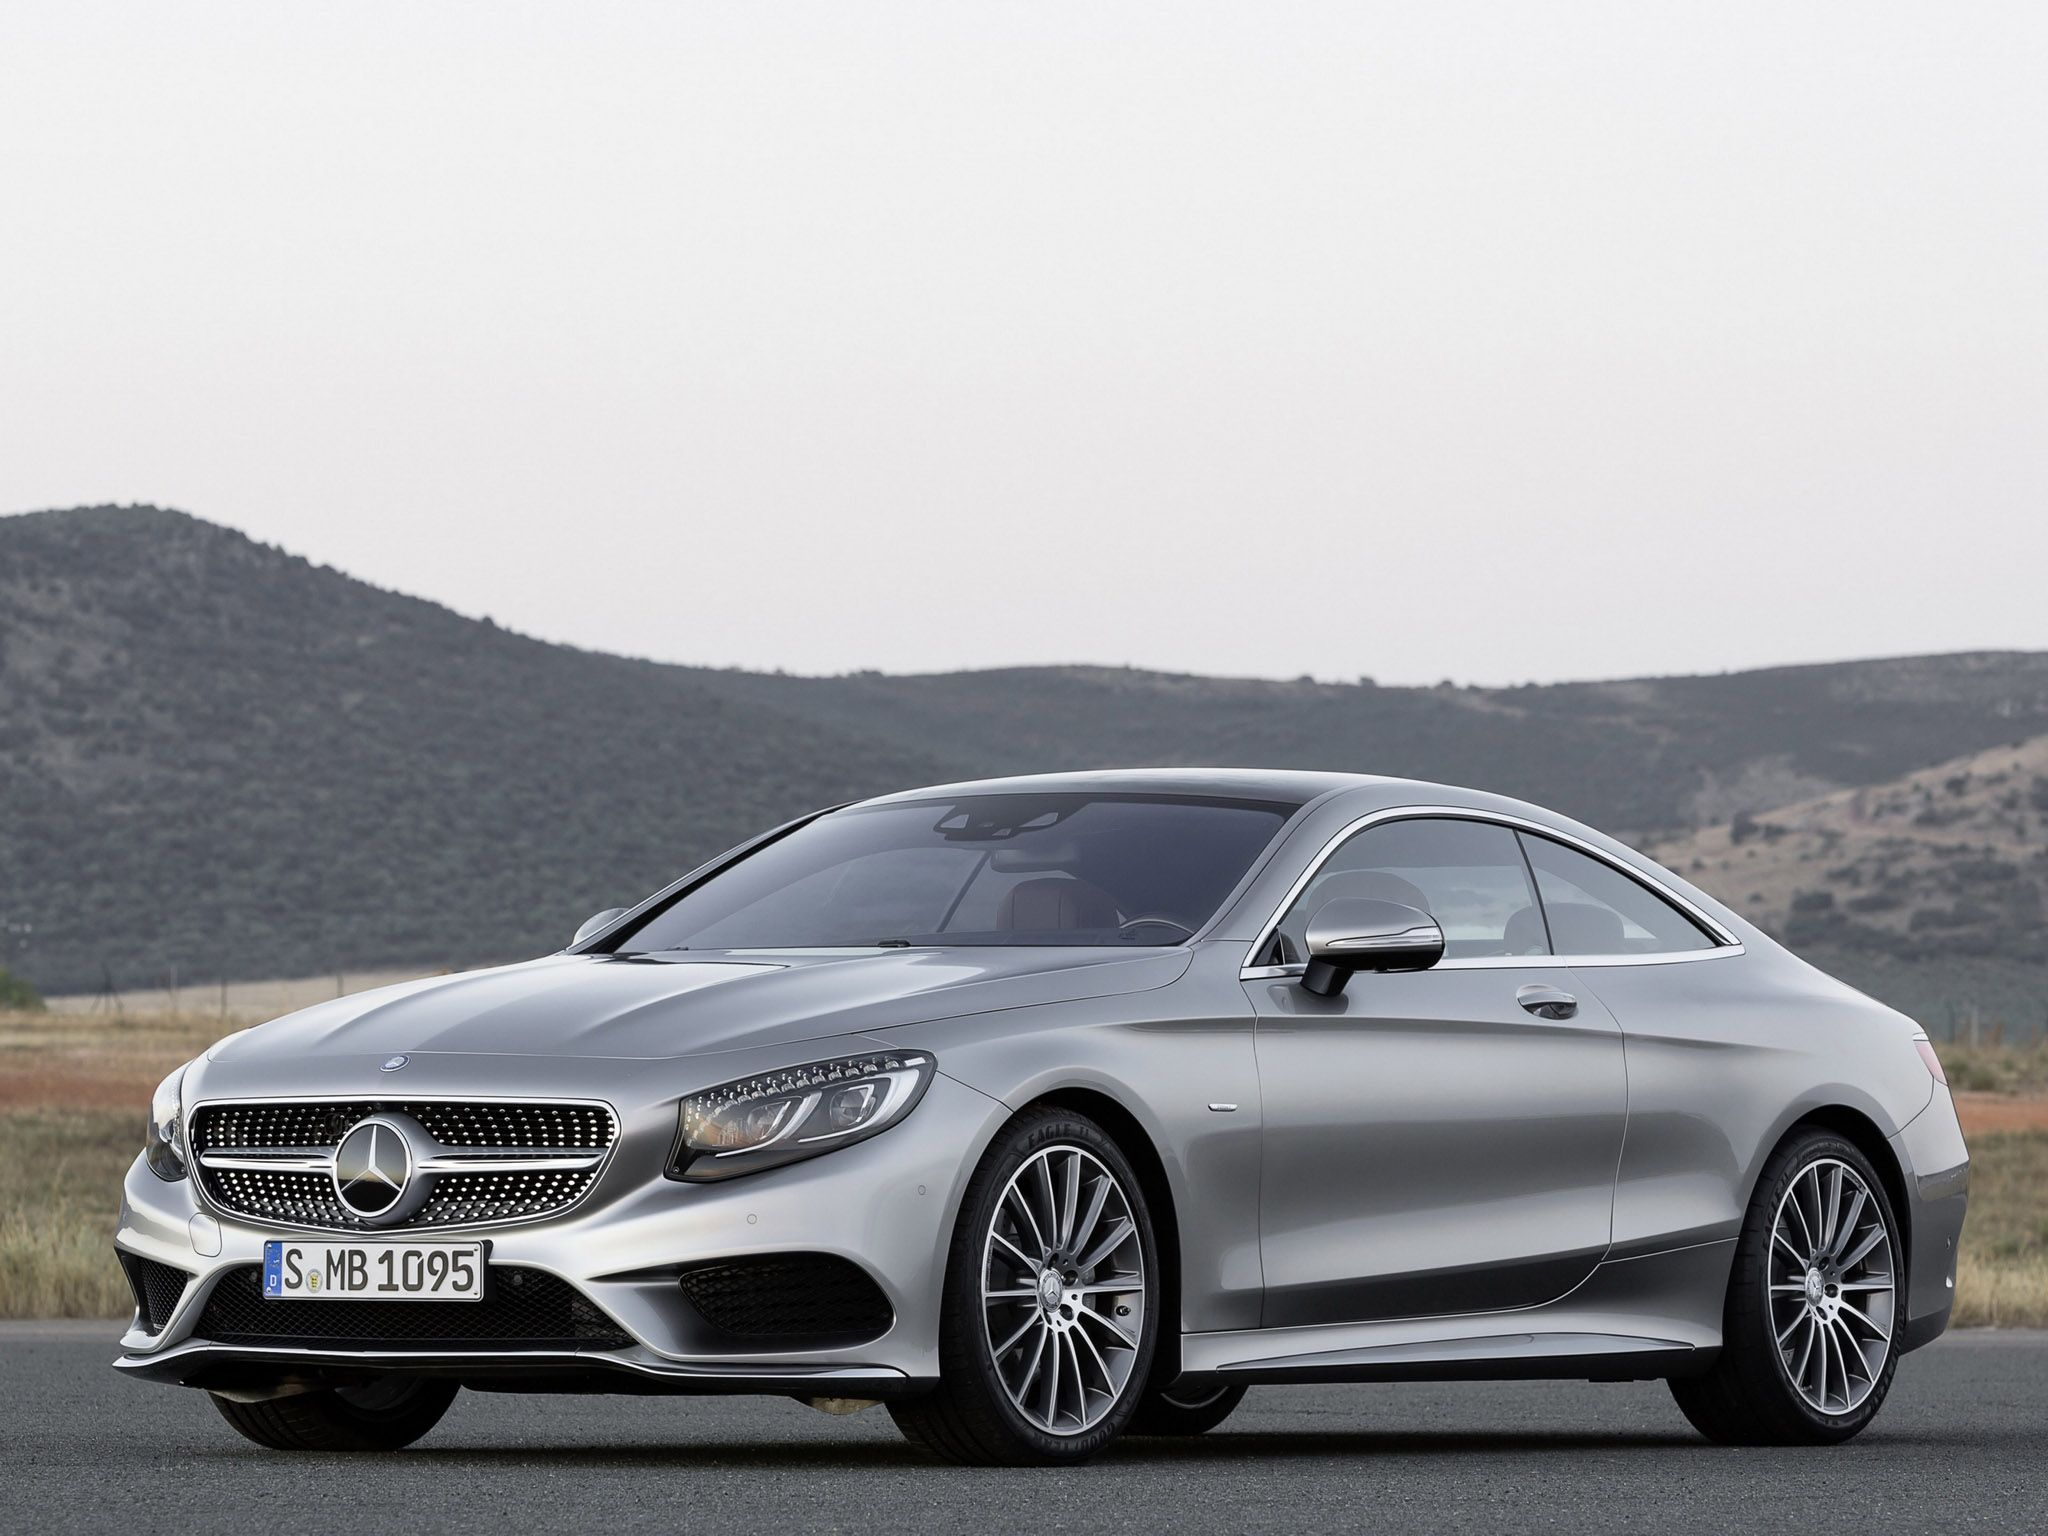 2018 mercedes cls will be available as sedan only http carsintrend com 2018 mercedes cls ars in rend pinterest